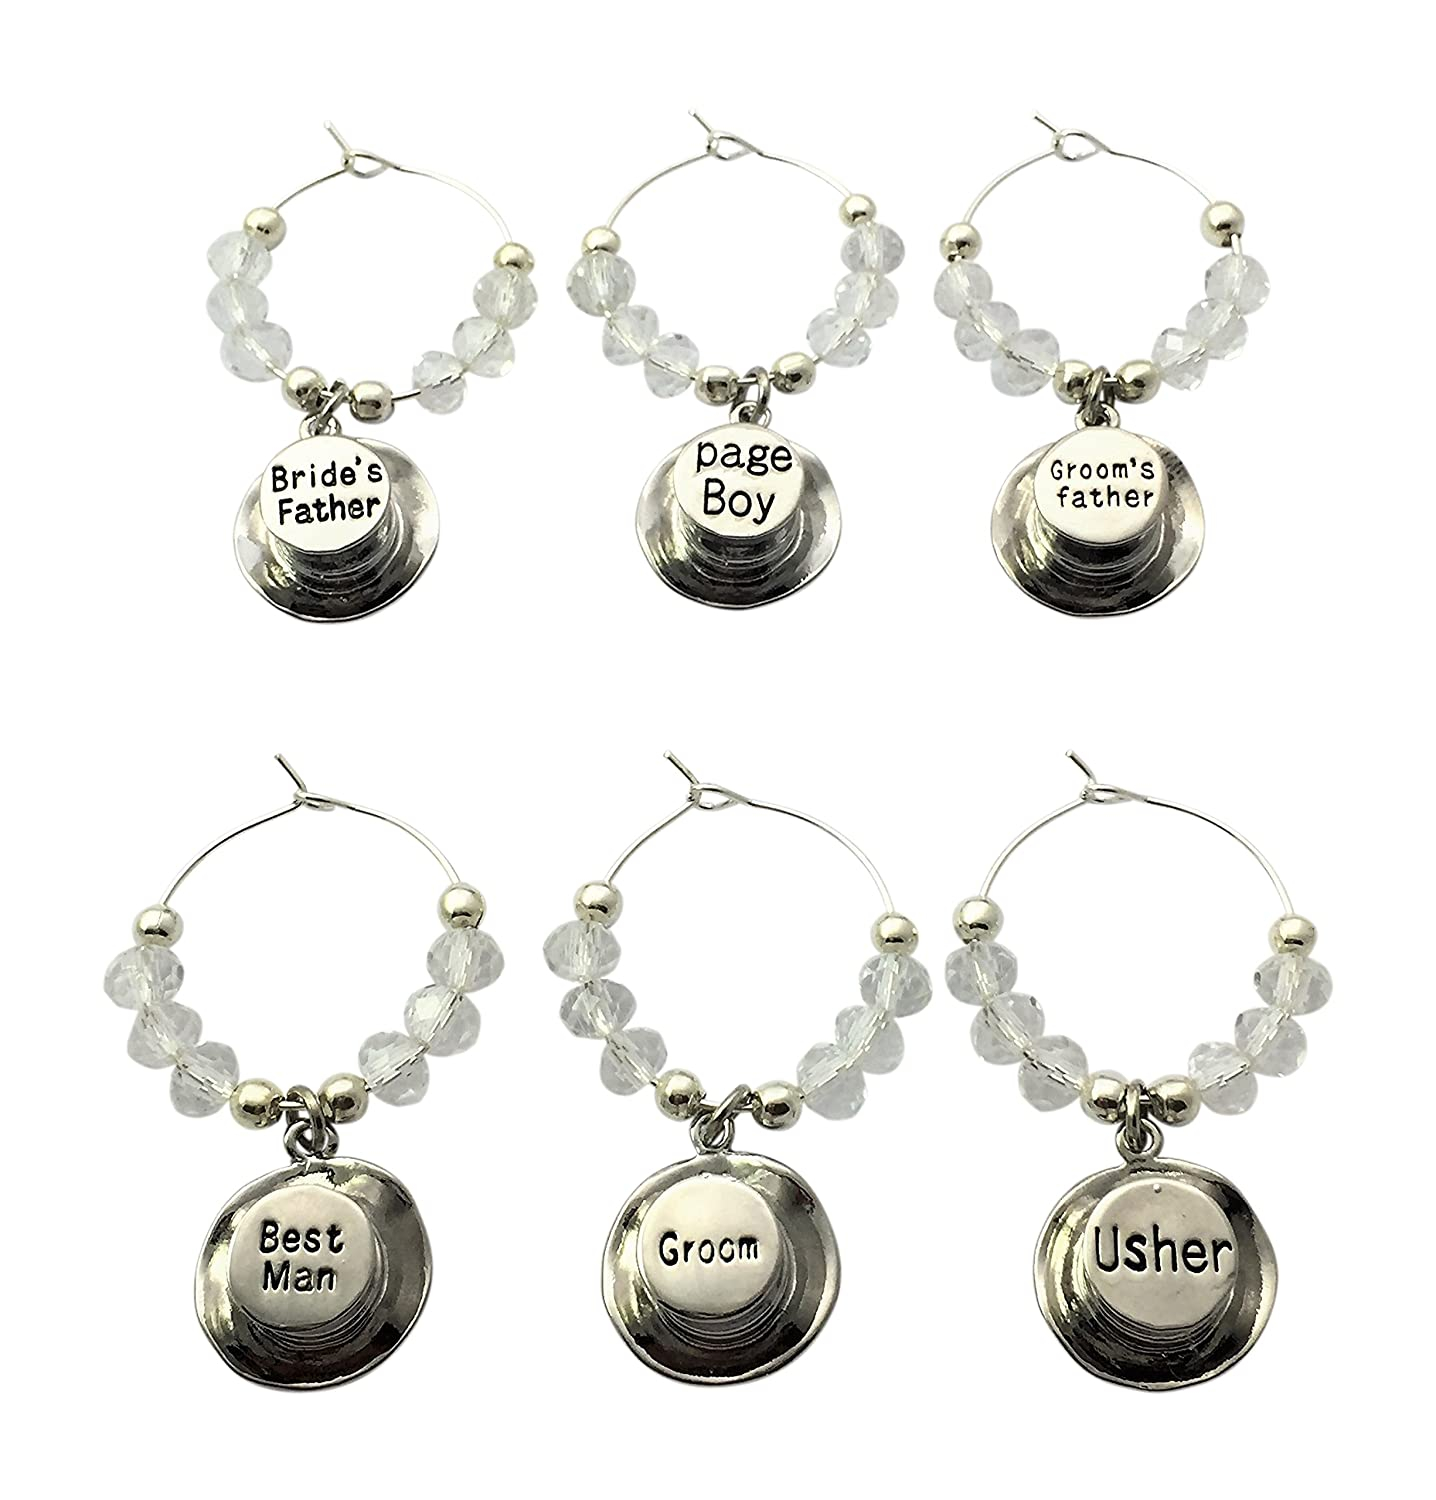 Groom Best Man etc Top Hat Wine Glass Charms Best Man ~ Top Hat Wedding Wine Glass Charms Bridesmaid Hen Night Wine Glass Charms with Gift Card by Libbys Market Place ~ 20 Different Wedding Party Option ~ Bride